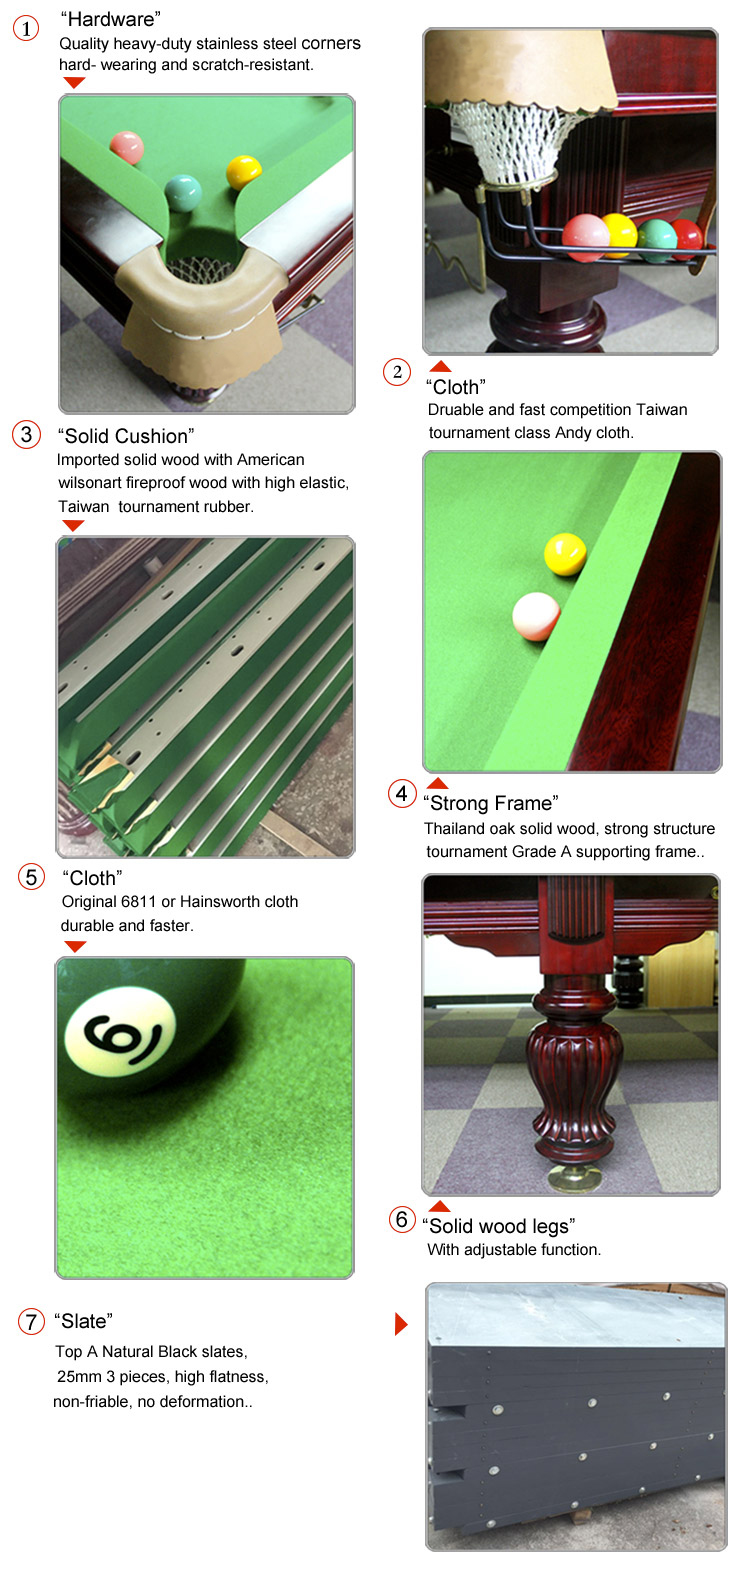 Snooker feature7.jpg